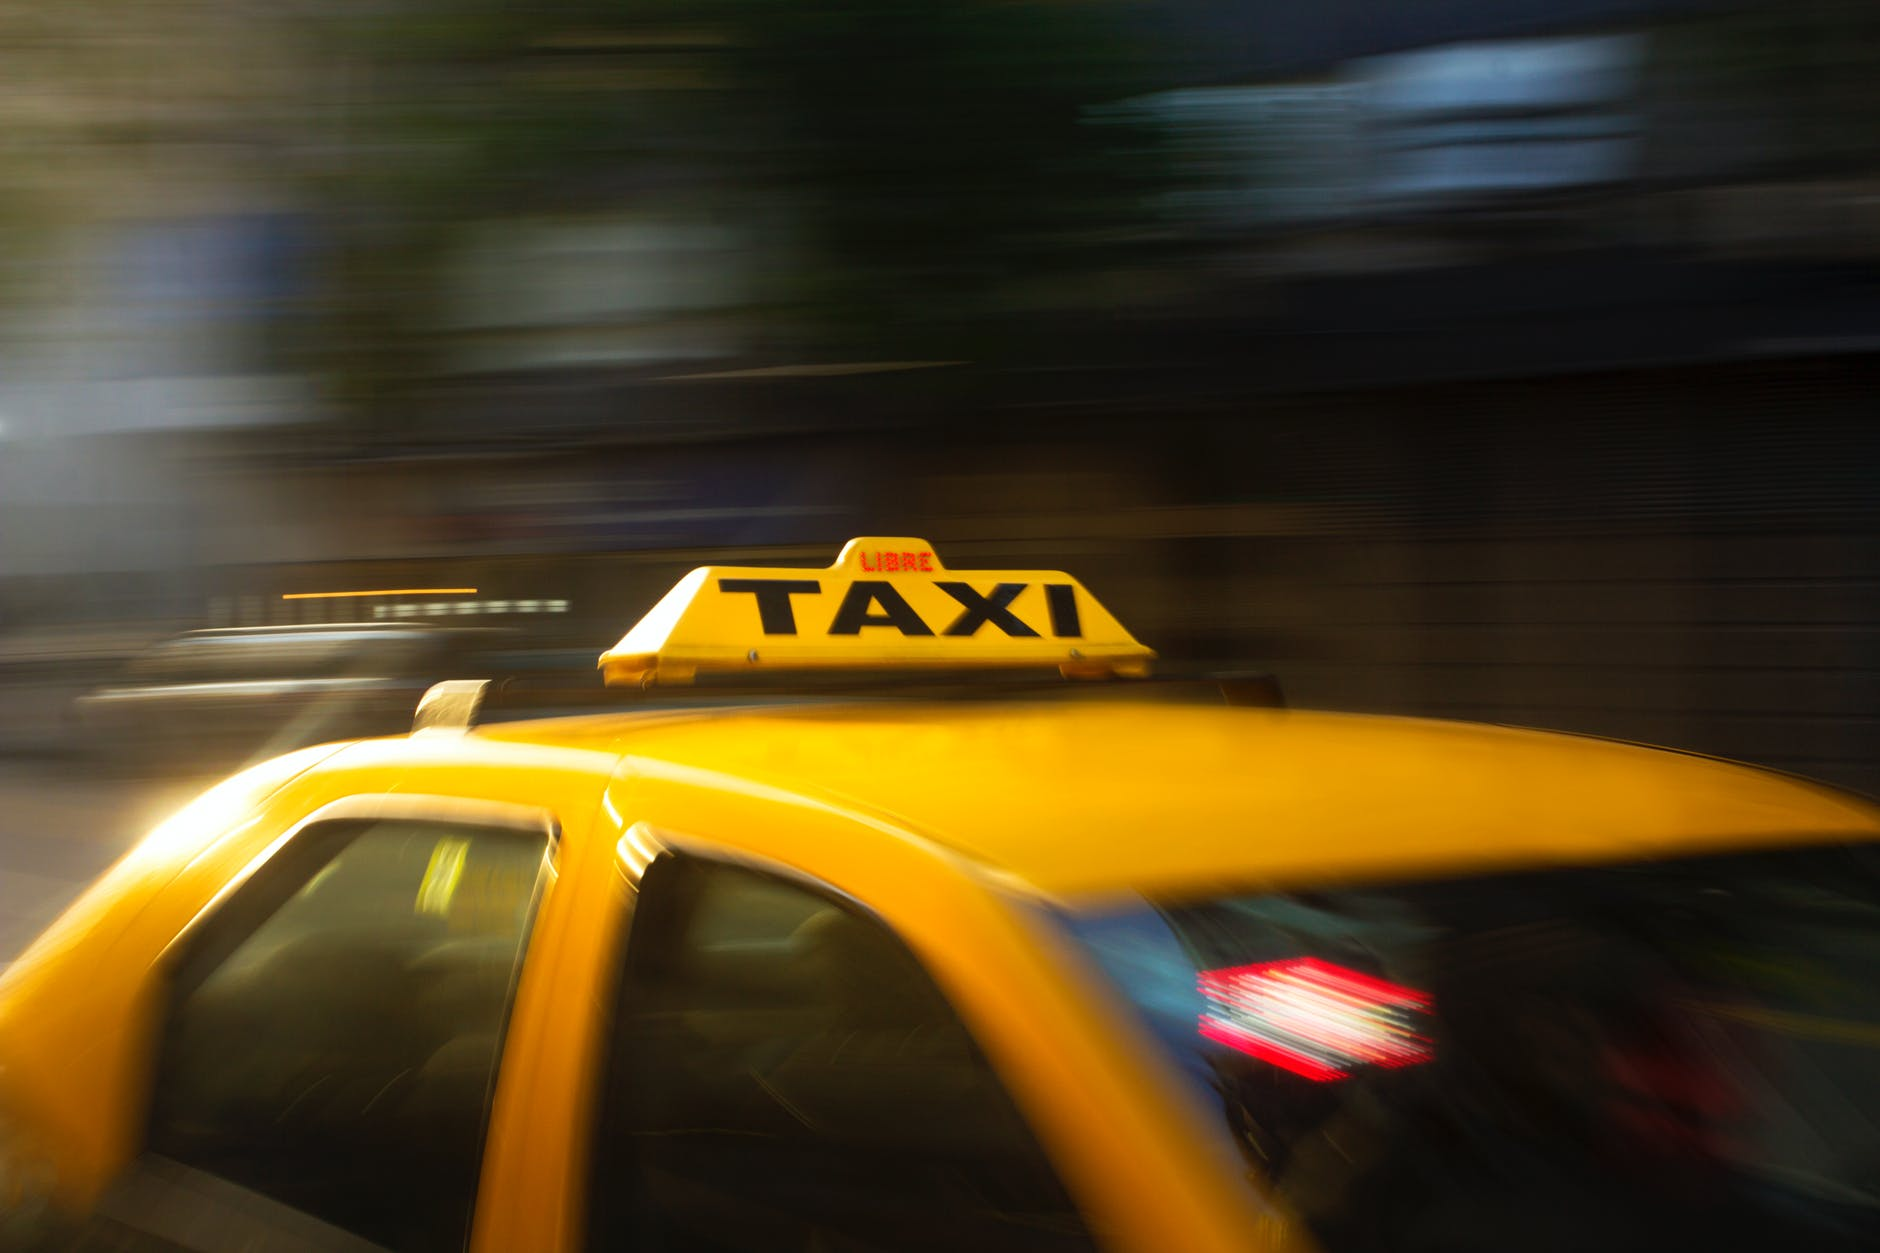 panning photography of yellow taxi